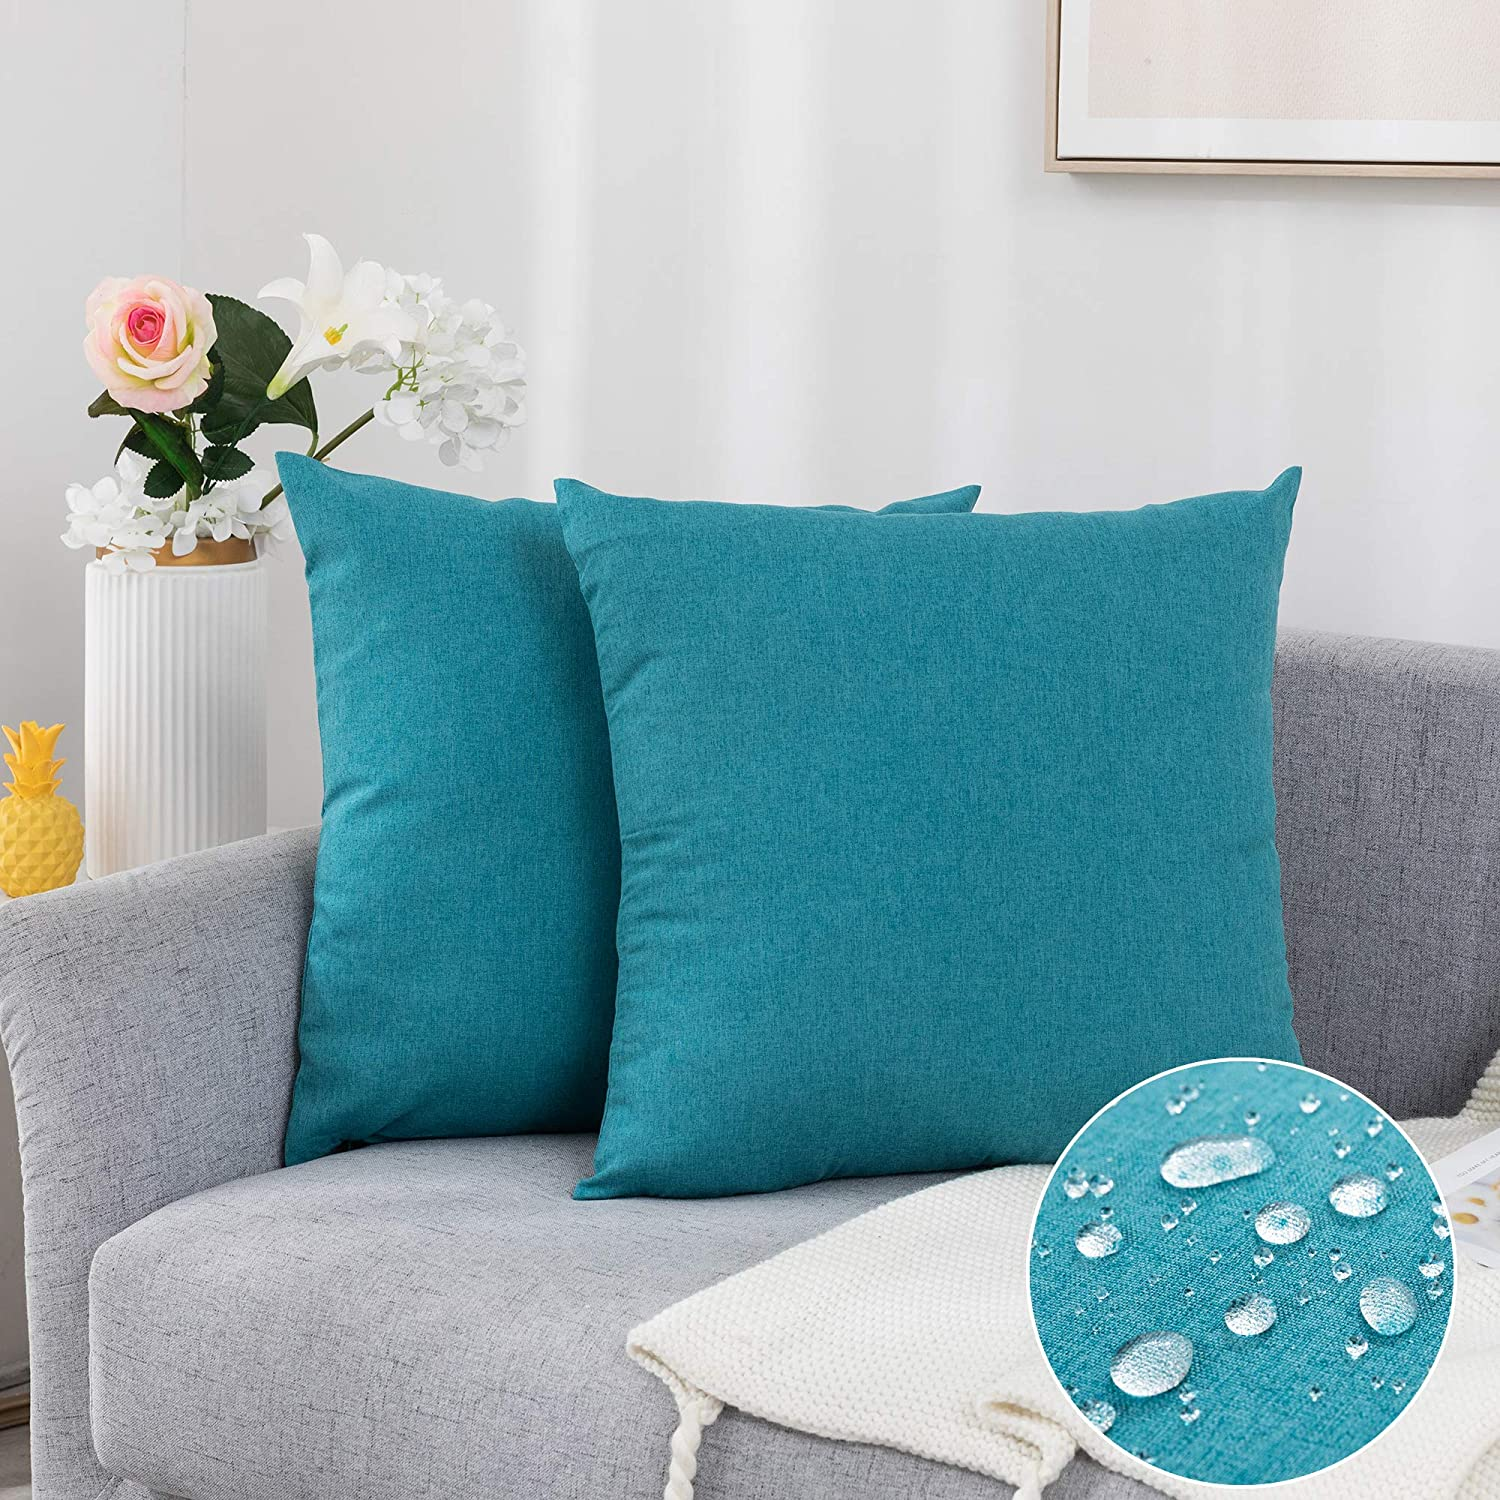 """Pack of 2 Decorative Outdoor Waterproof Pillow Covers Soft Cotton Linen Garden Cushion Case for Patio Couch Sofa Home Decoration (Turquoise, 2020"""")"""